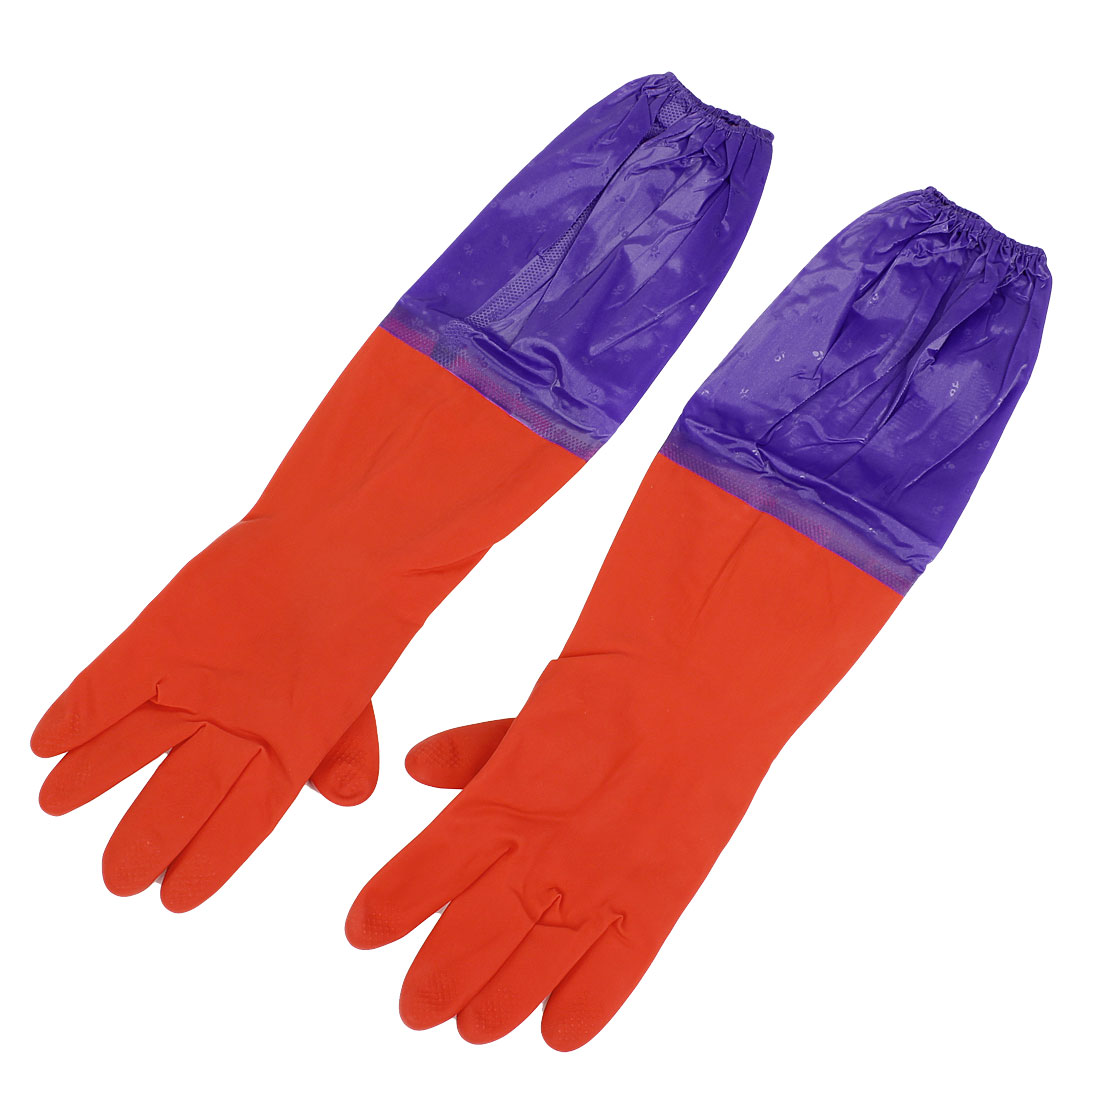 Household Latex Anti Skid Working Cleaning Long Cuff Gloves Purple Red Pair